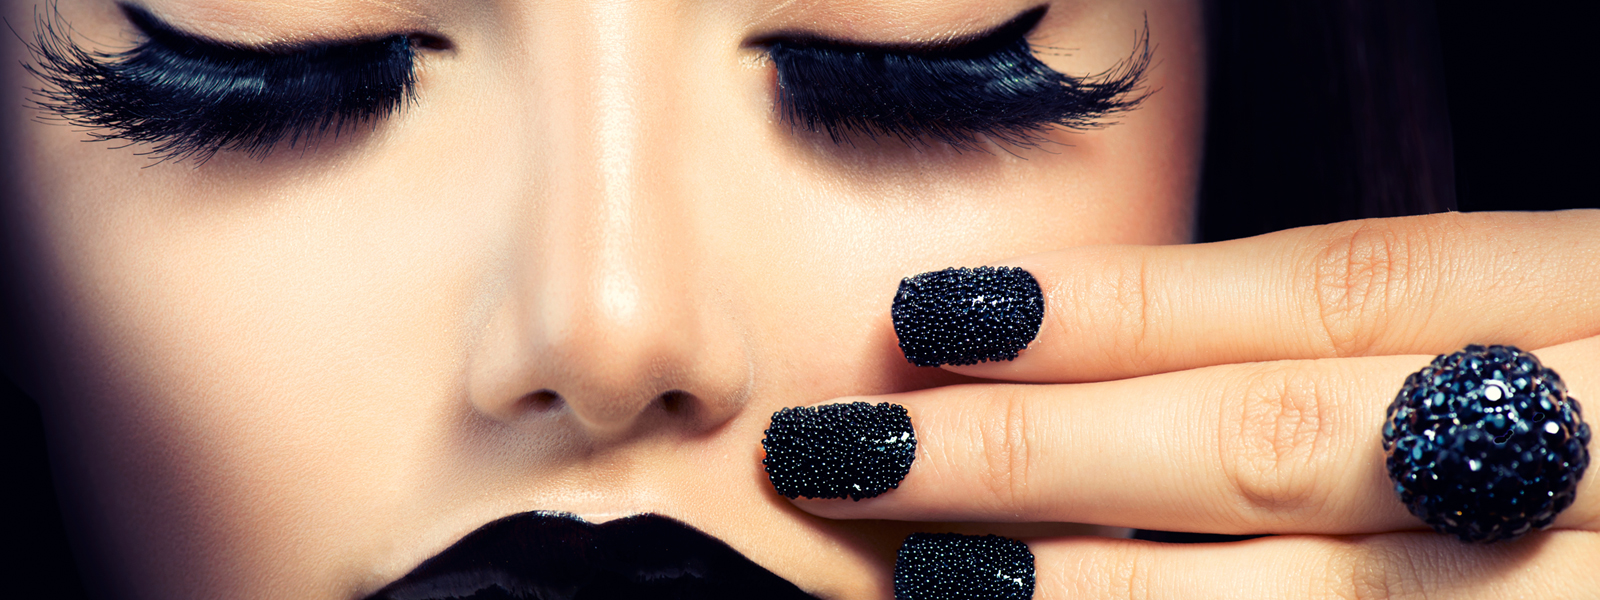 nails-beauty-8